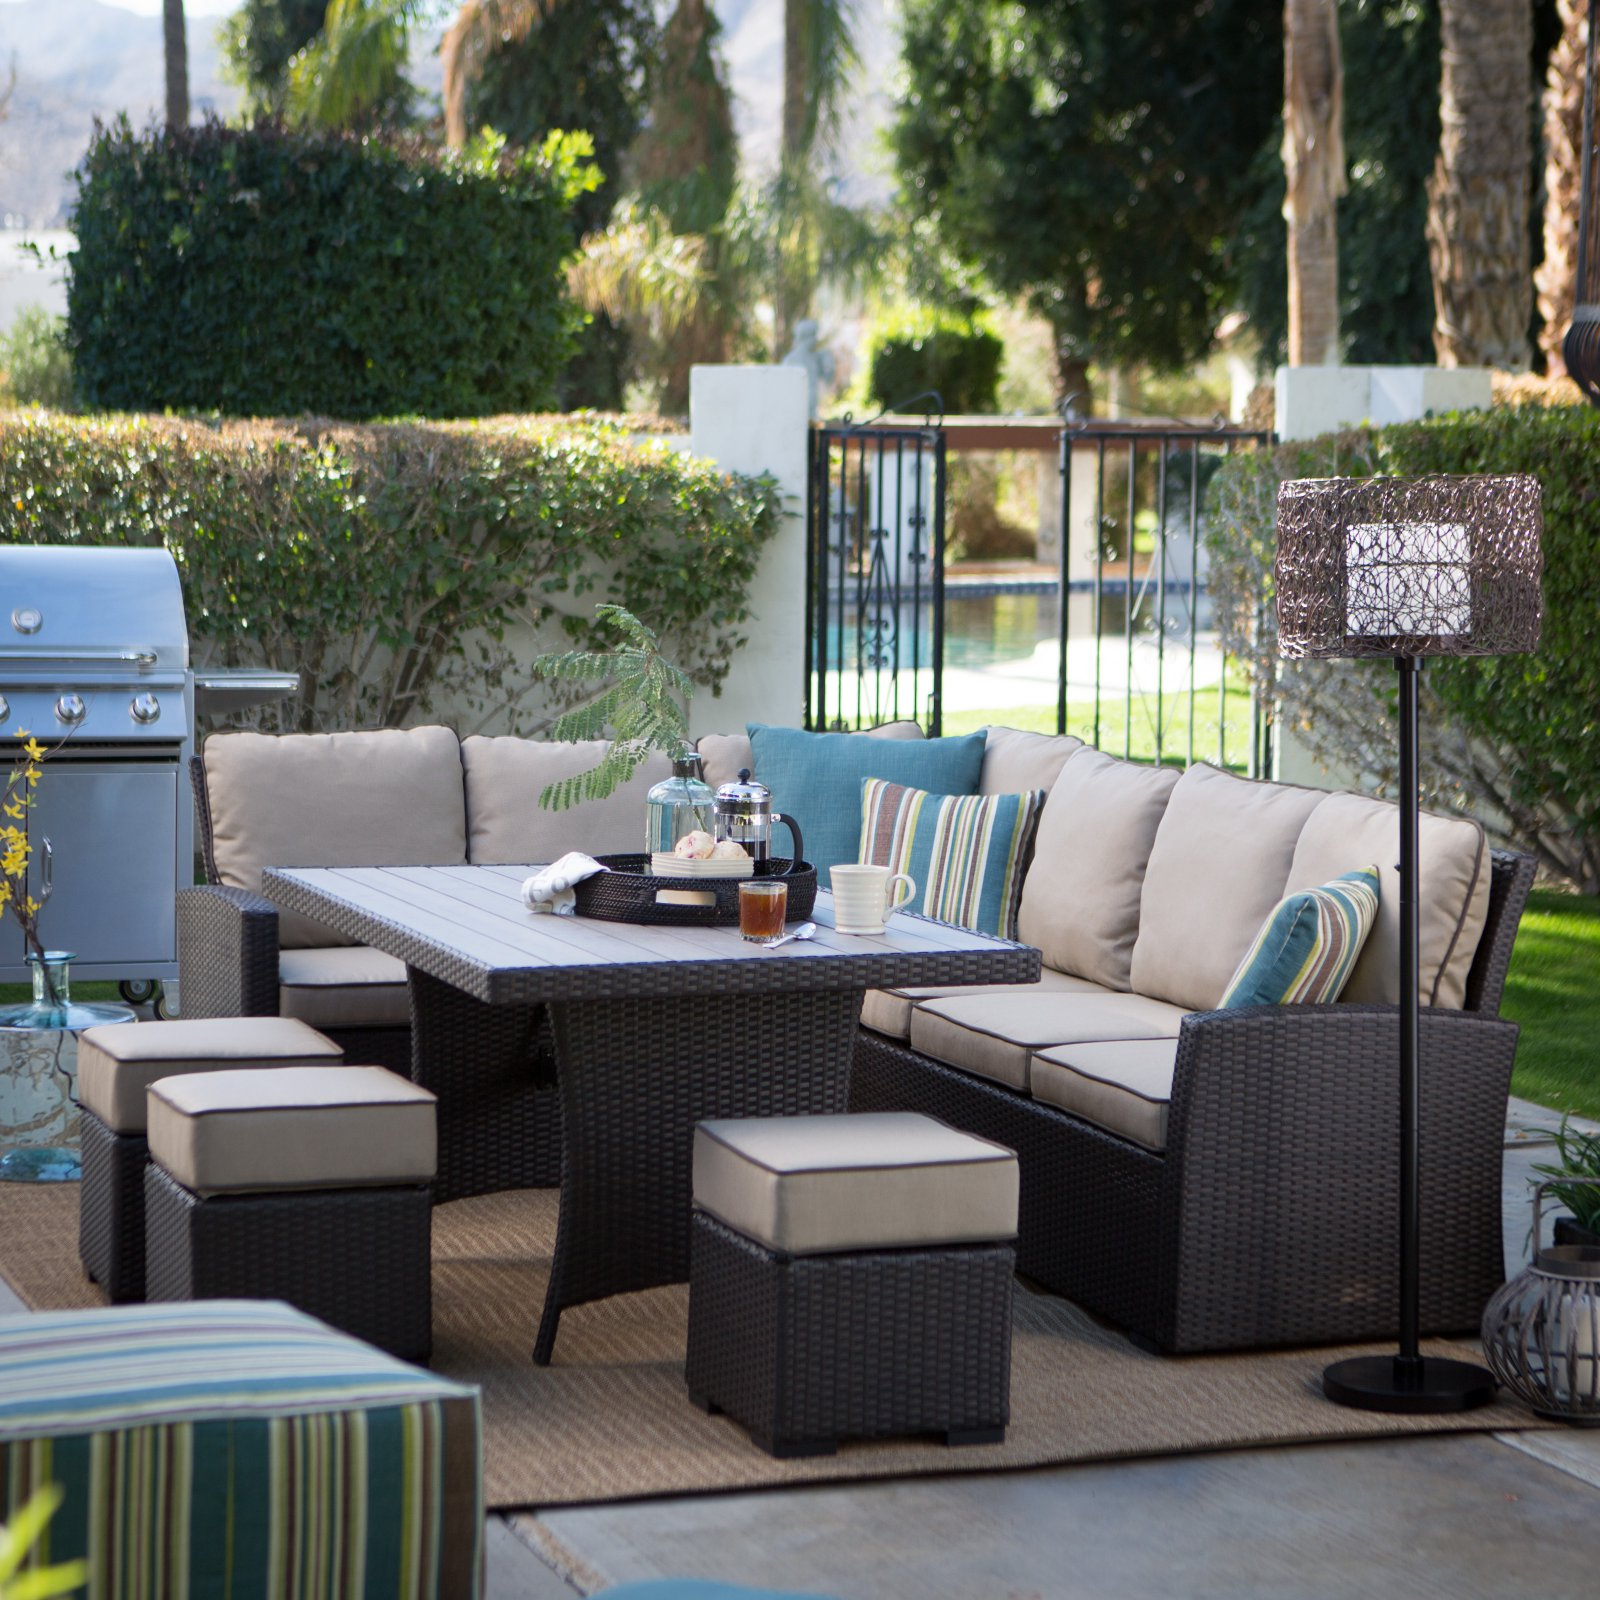 Belham Living Monticello All-Weather Wicker Sofa Sectional Patio Dining Set Image 2 of 10 & Belham Living Monticello All-Weather Wicker Sofa Sectional Patio ...